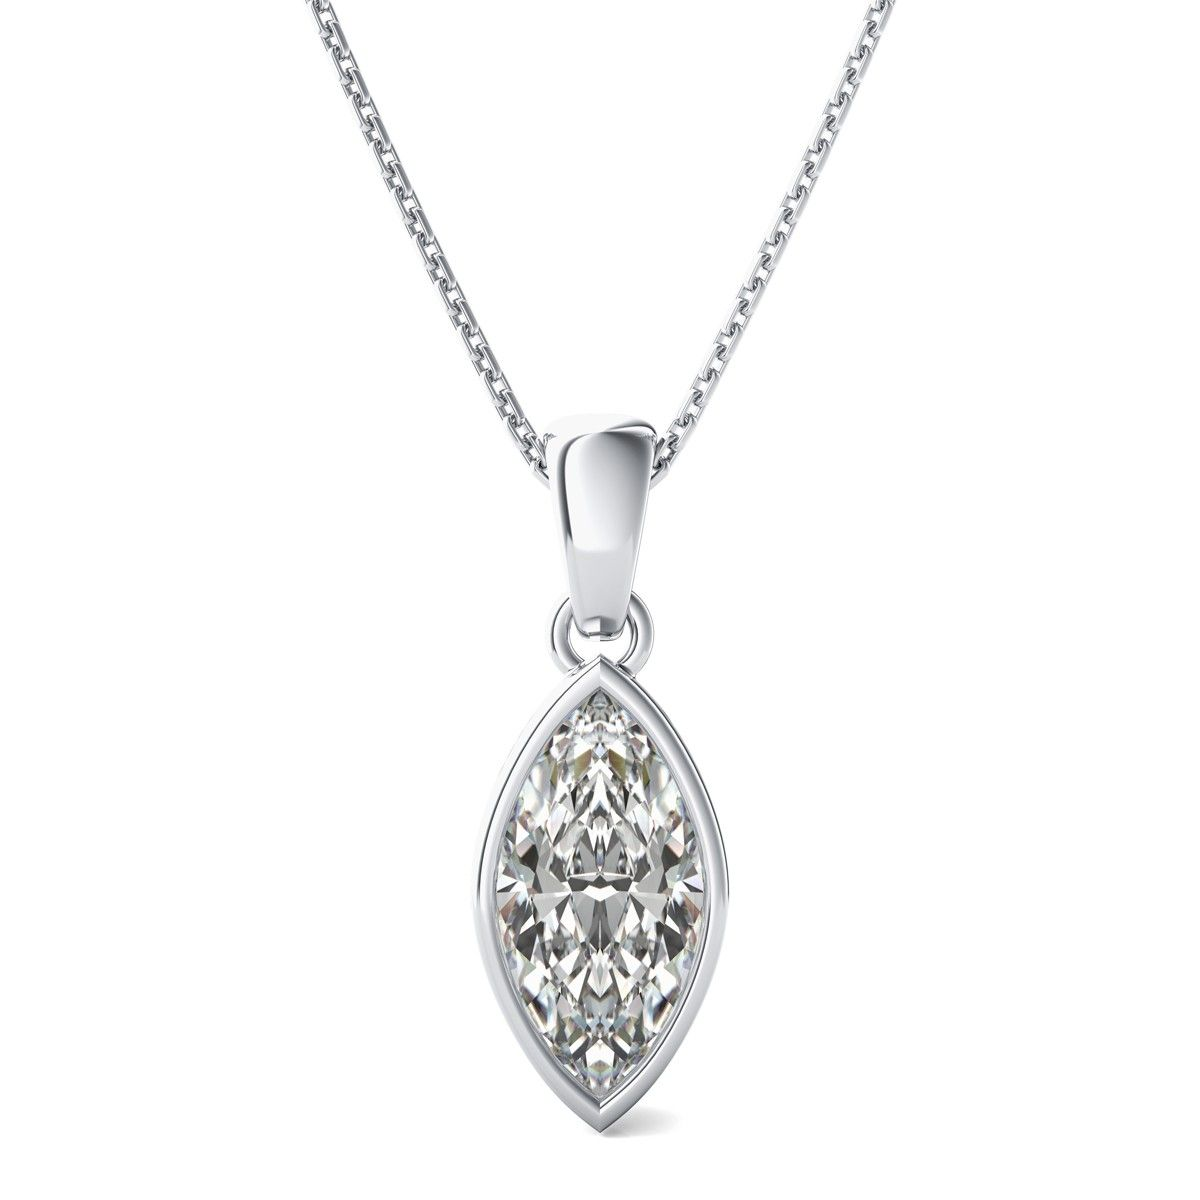 Bezel set solitaire pendant with marquise cut diamond by bezel set solitaire pendant with marquise cut diamond mozeypictures Image collections